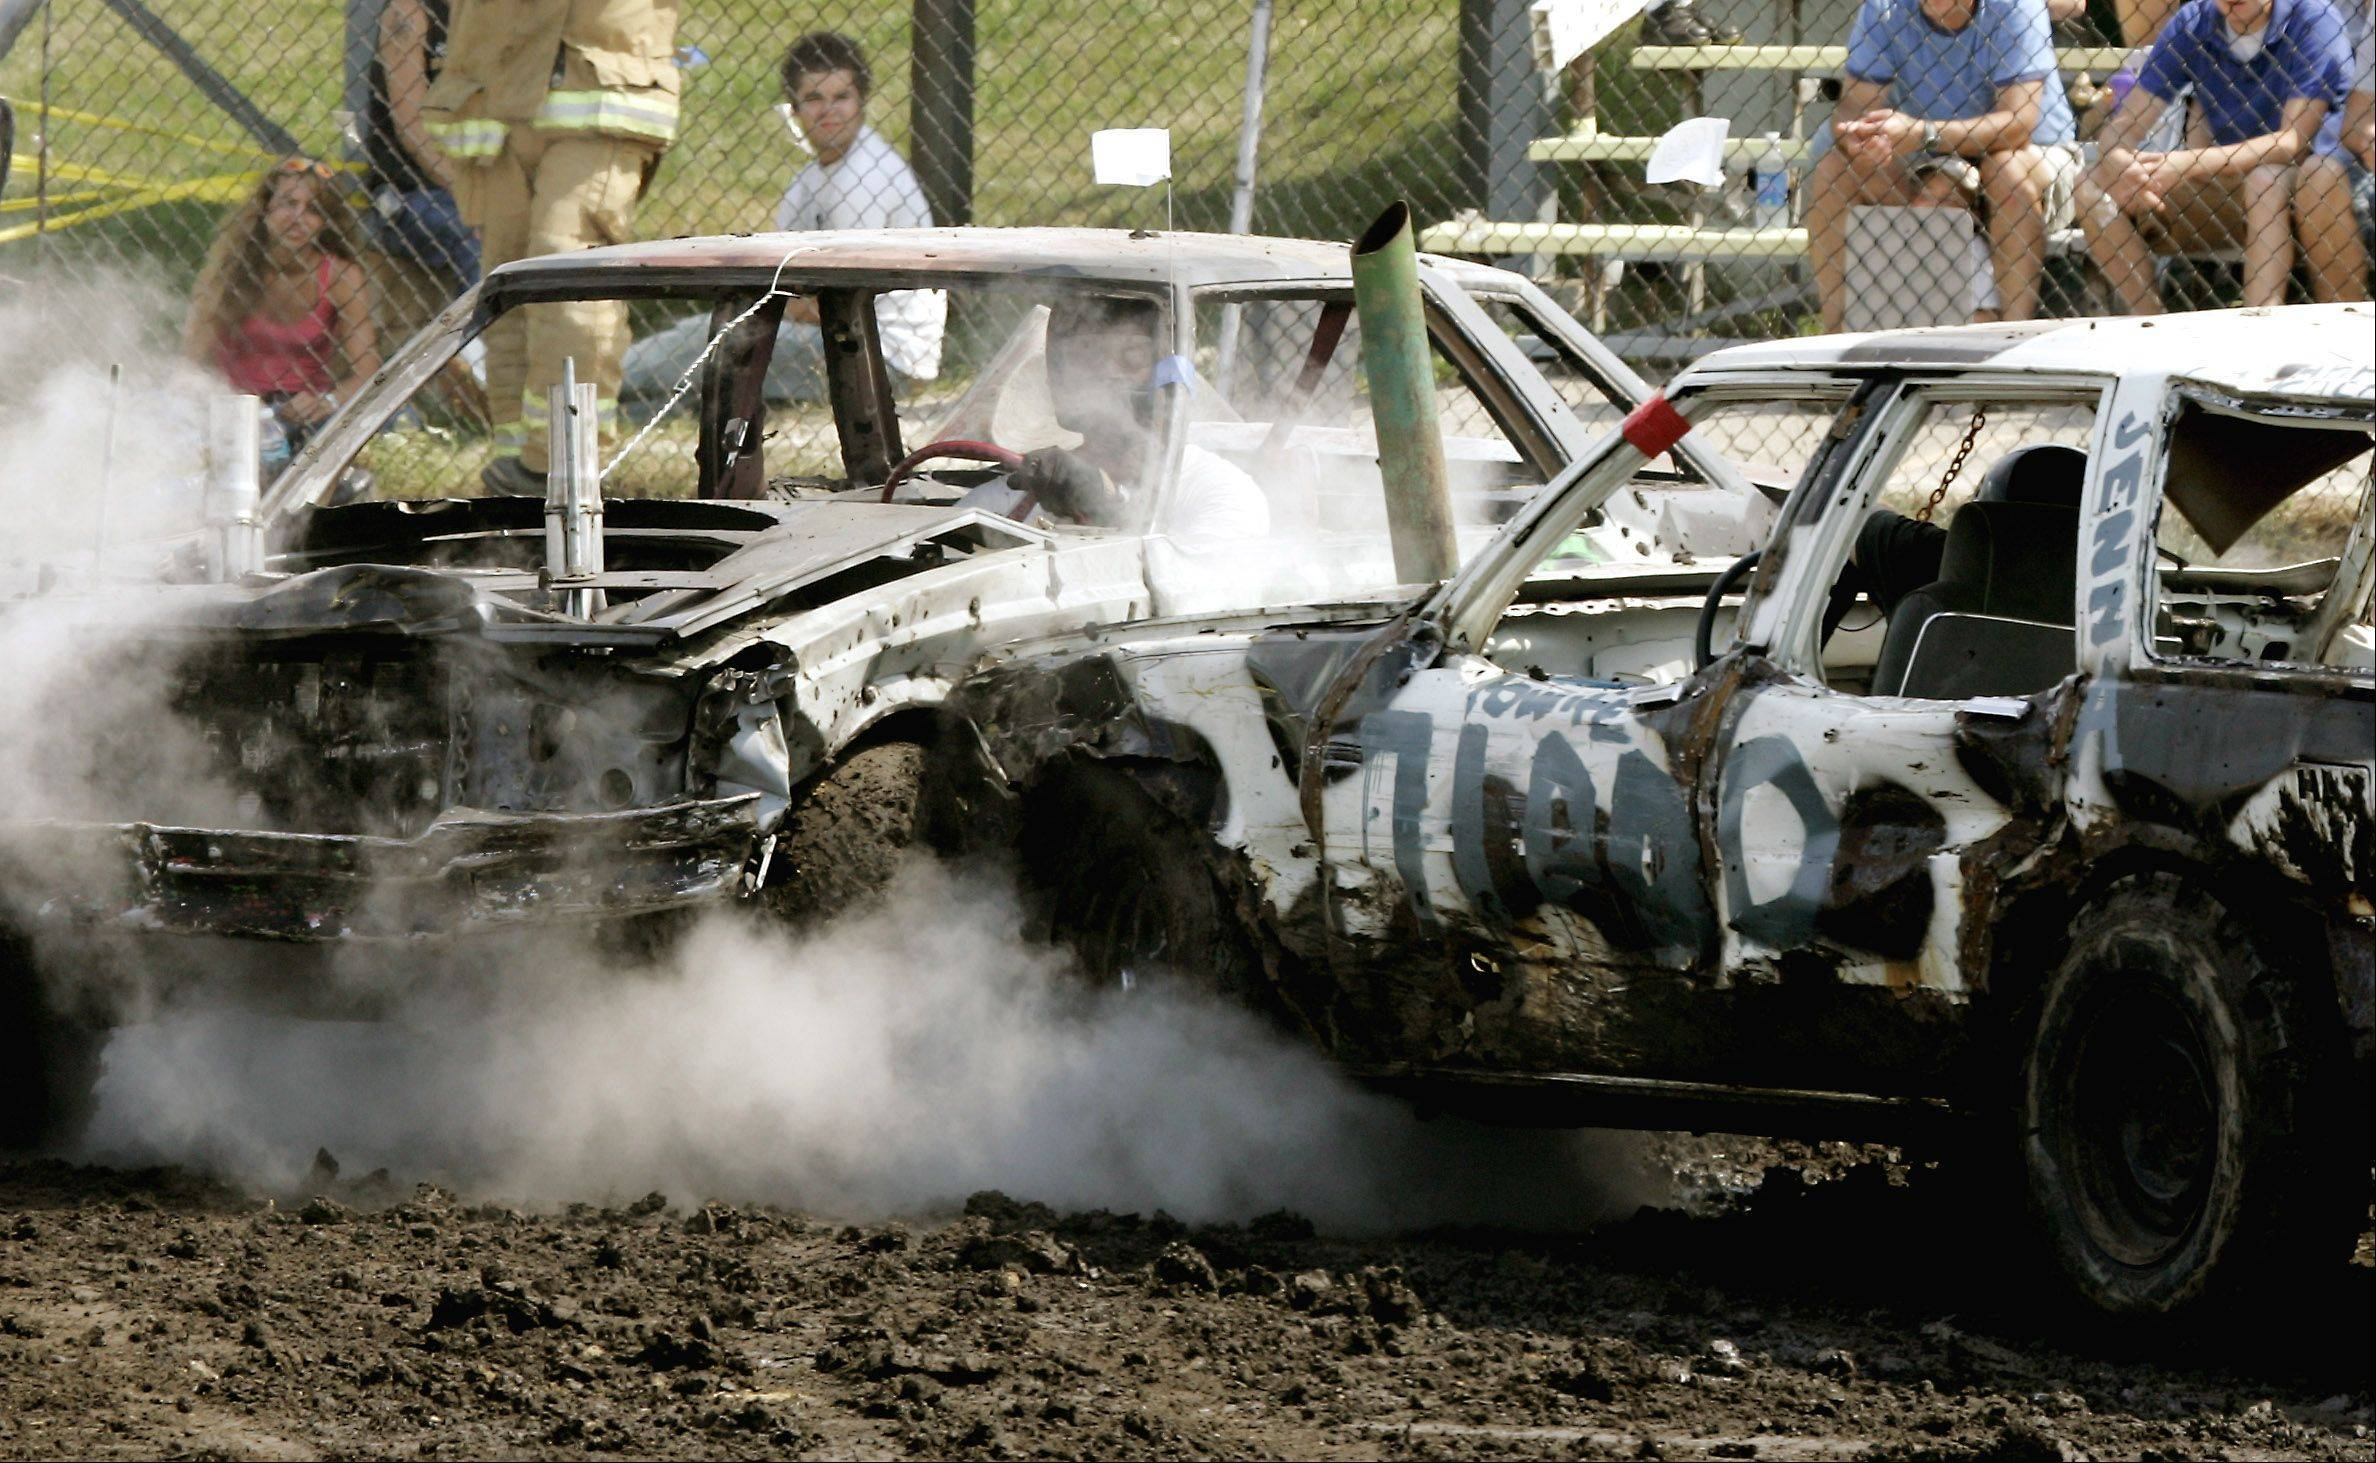 Demolition Derby drivers will chase each other through the mud on Sunday at the DuPage County Fair, hoping to disable the other vehicles on their way to victory.